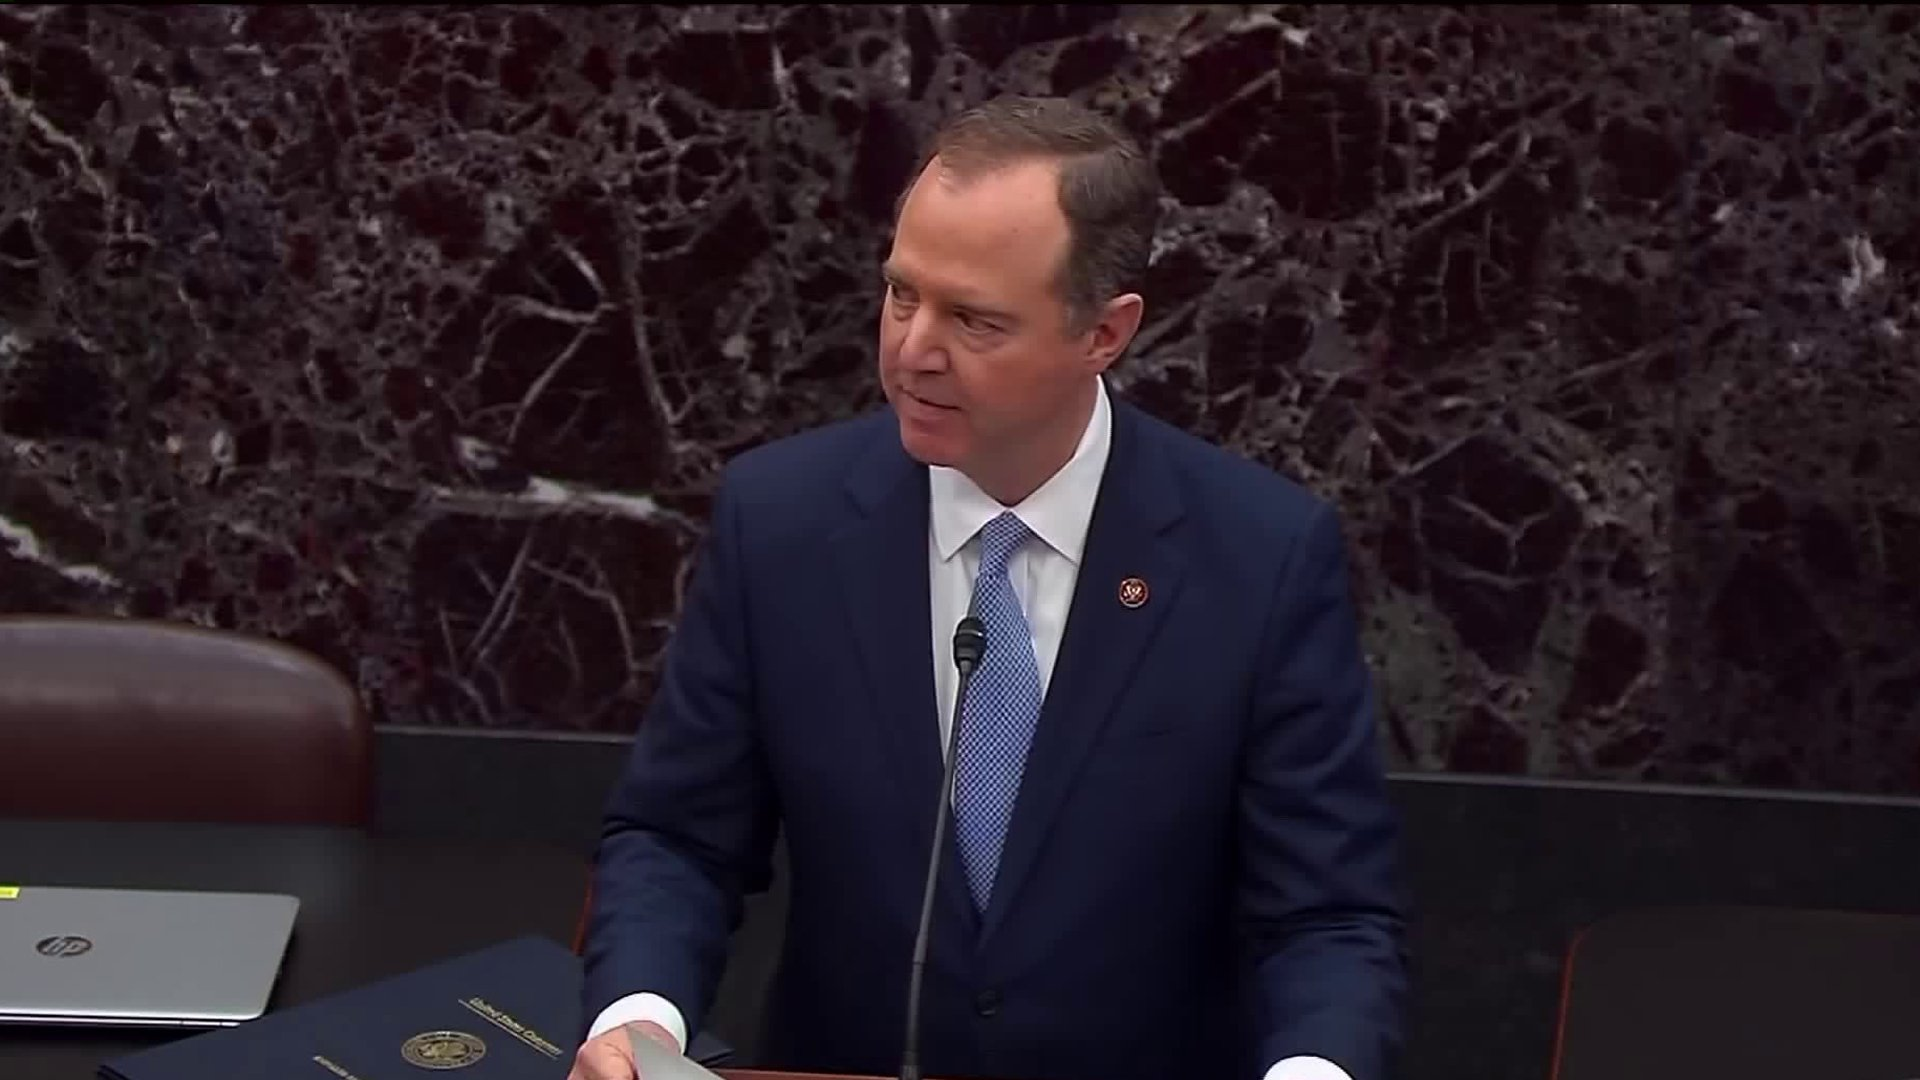 Rep. Adam Schiff of Burbank reads the charges against President Trump as the impeachment trial gets underway in the U.S. Senate on Jan. 16, 2020. (Credit: CNN)